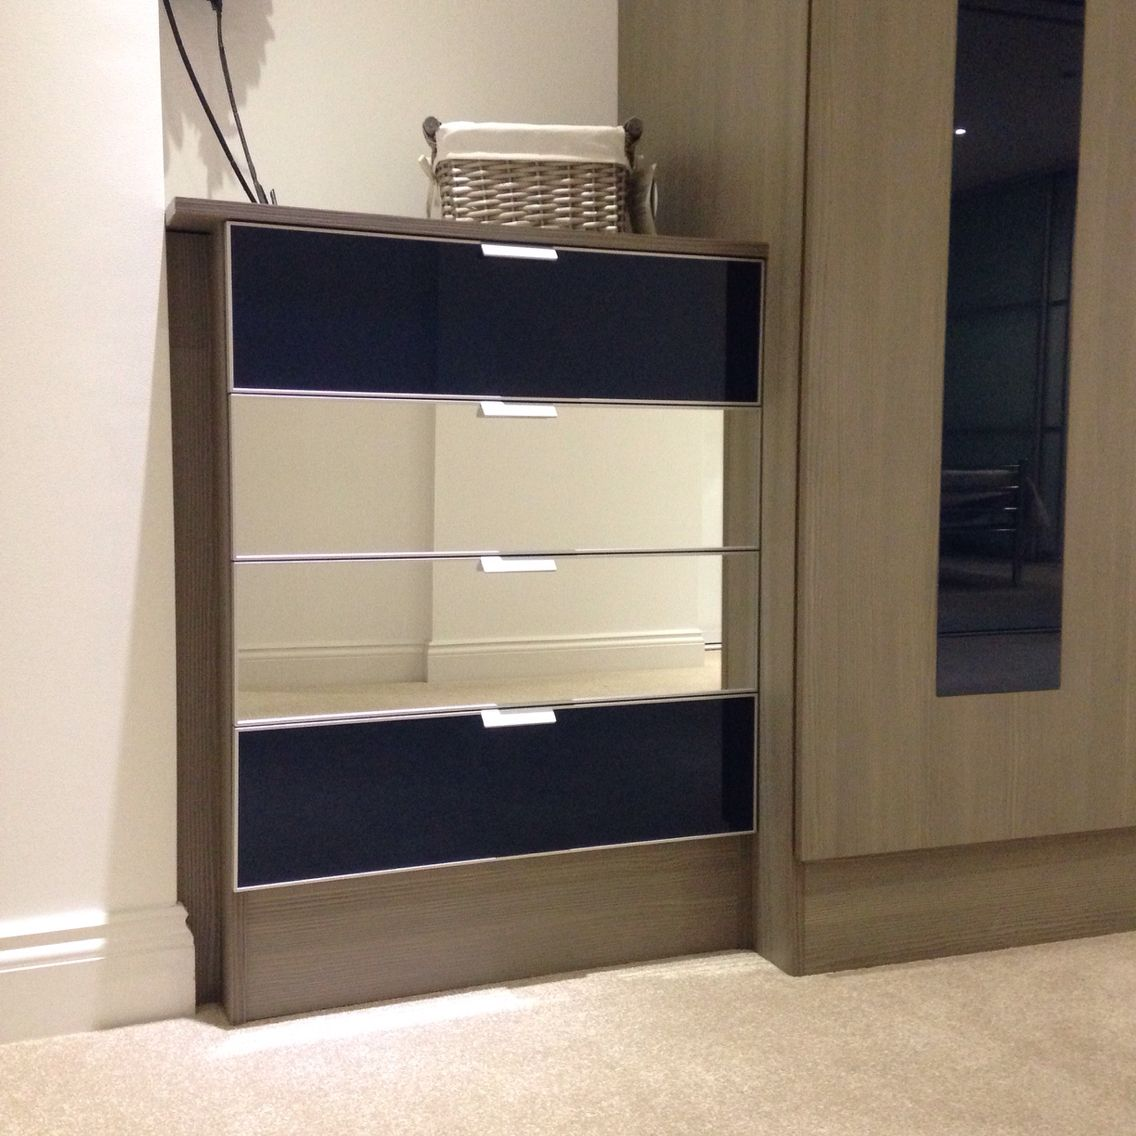 Loft bedroom with no door Petrol blue glass and mirrored drawer fronts  Recent wardrobe